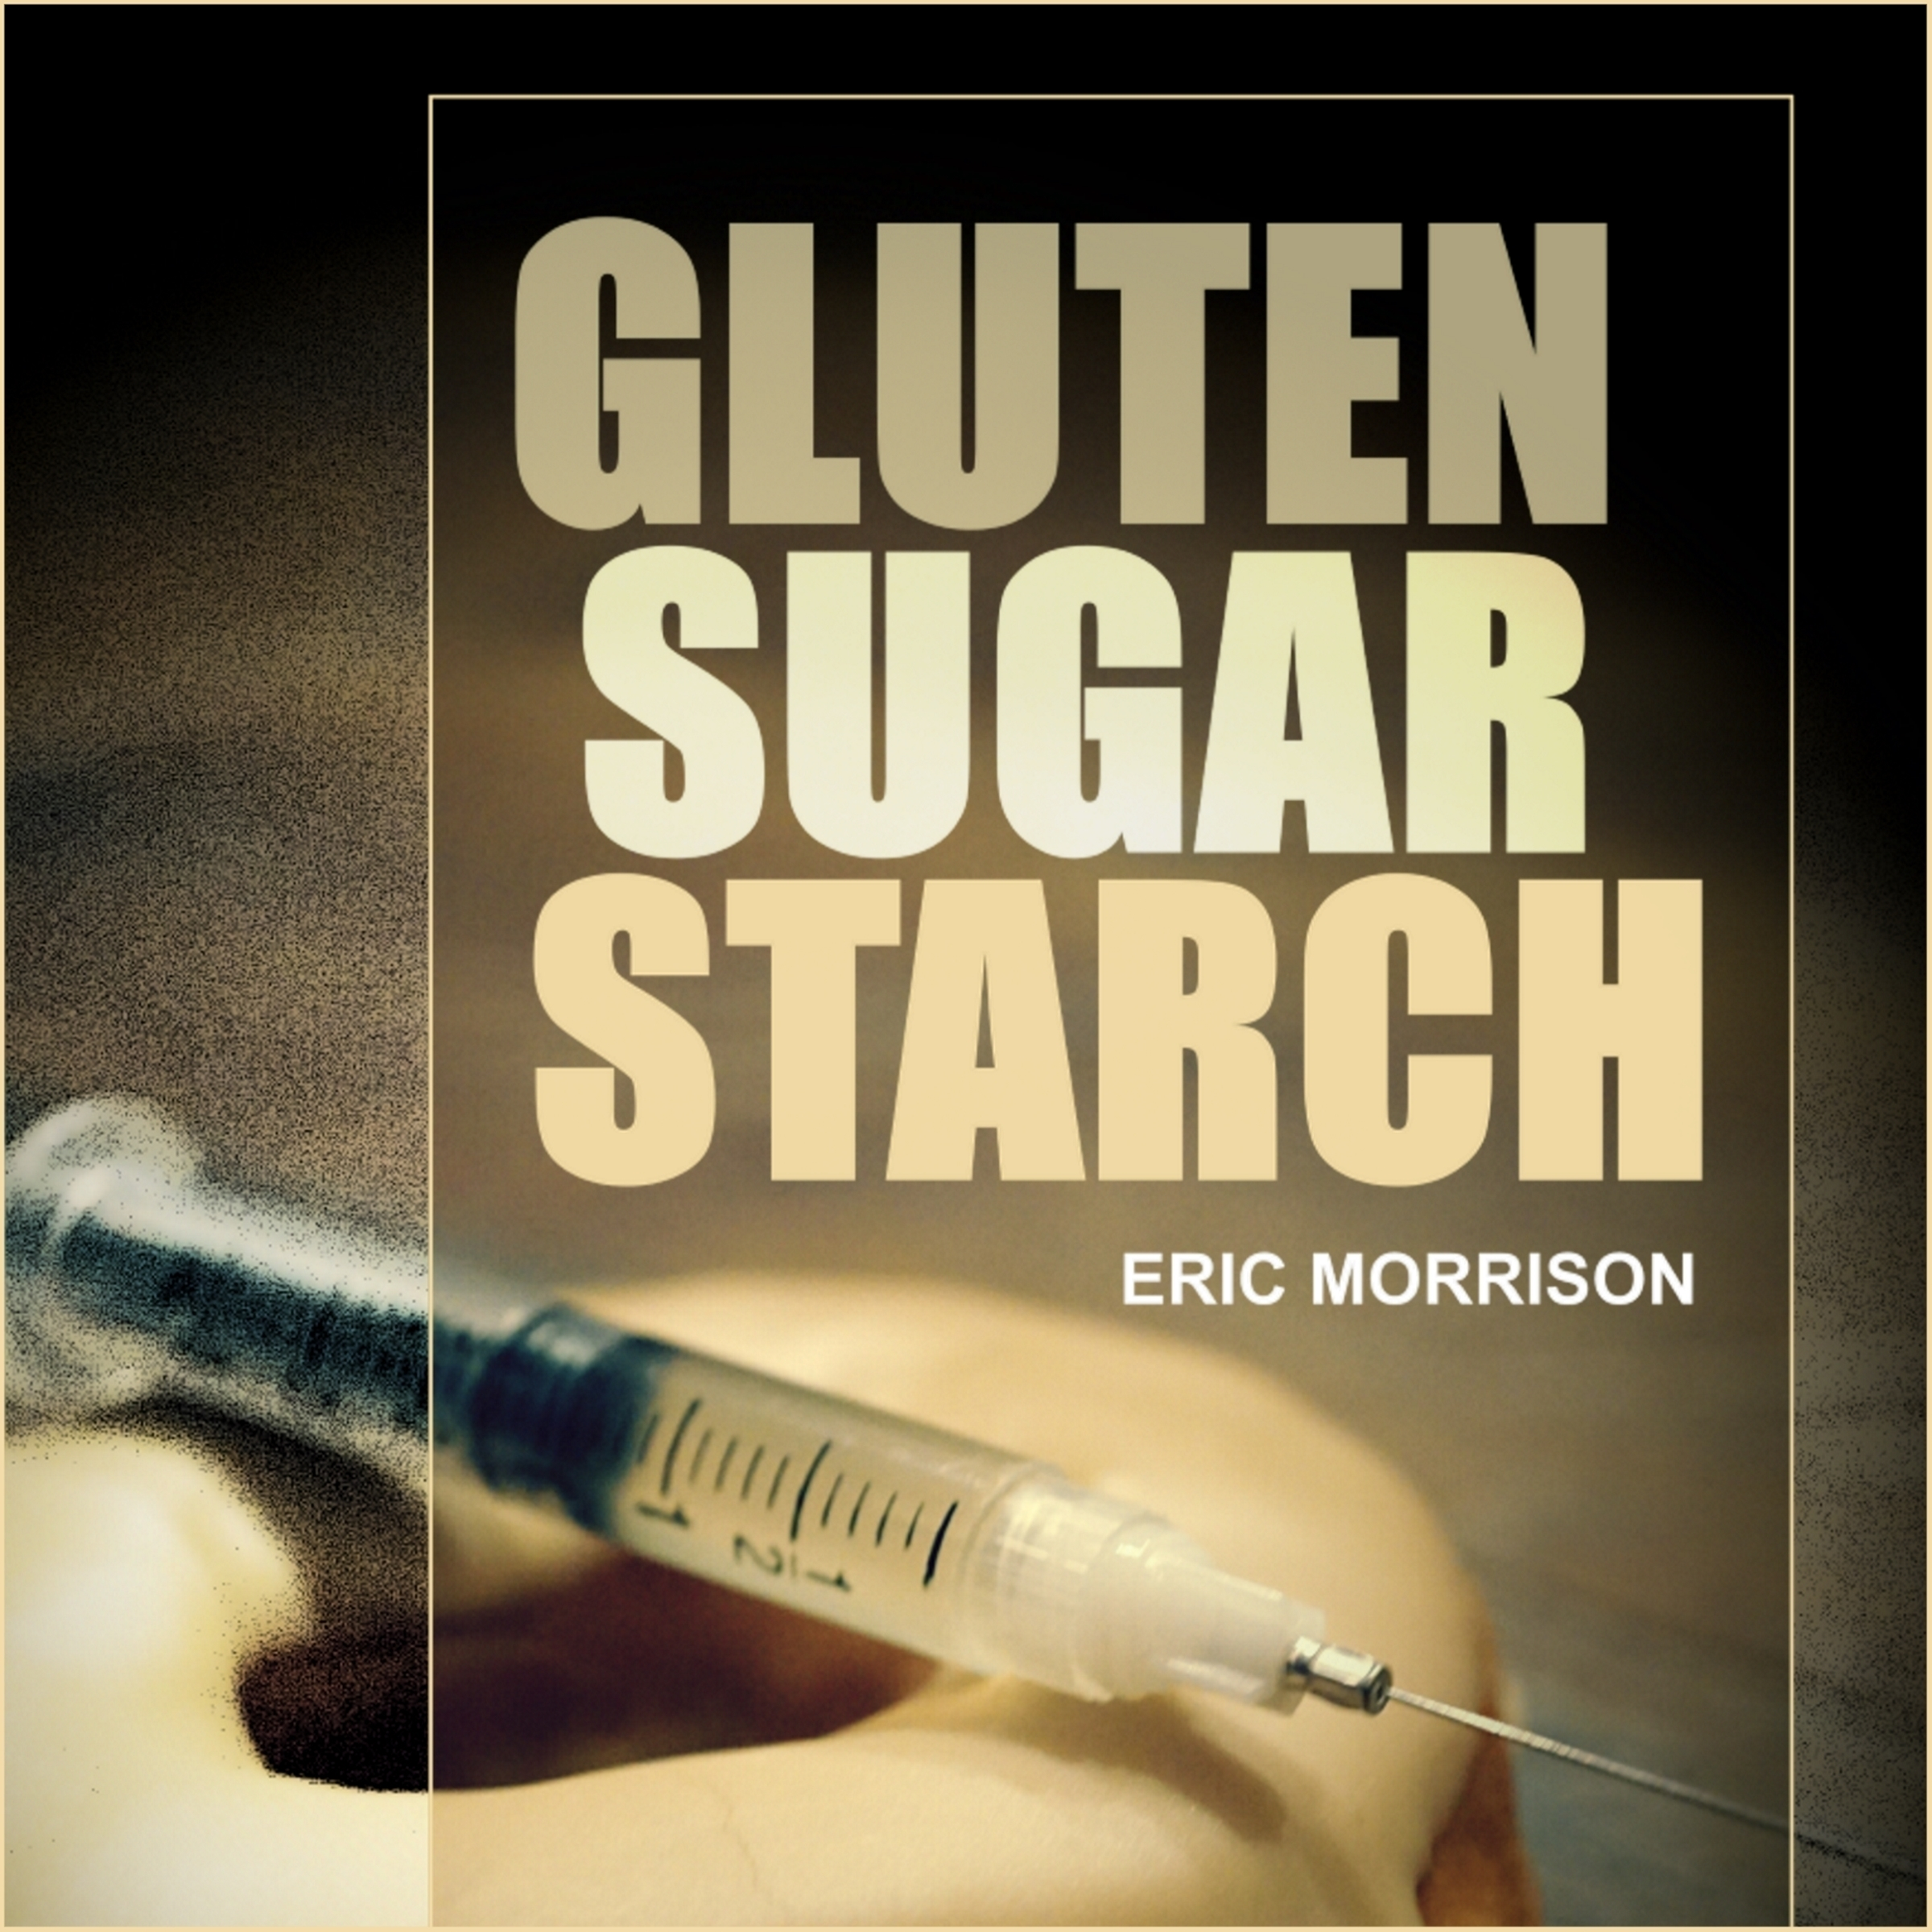 Printable Gluten, Sugar, Starch: How To Free Yourself From The Food Addictions That Are Ravaging Your Health And Keeping You Fat - A Paleo Appproach Audiobook Cover Art